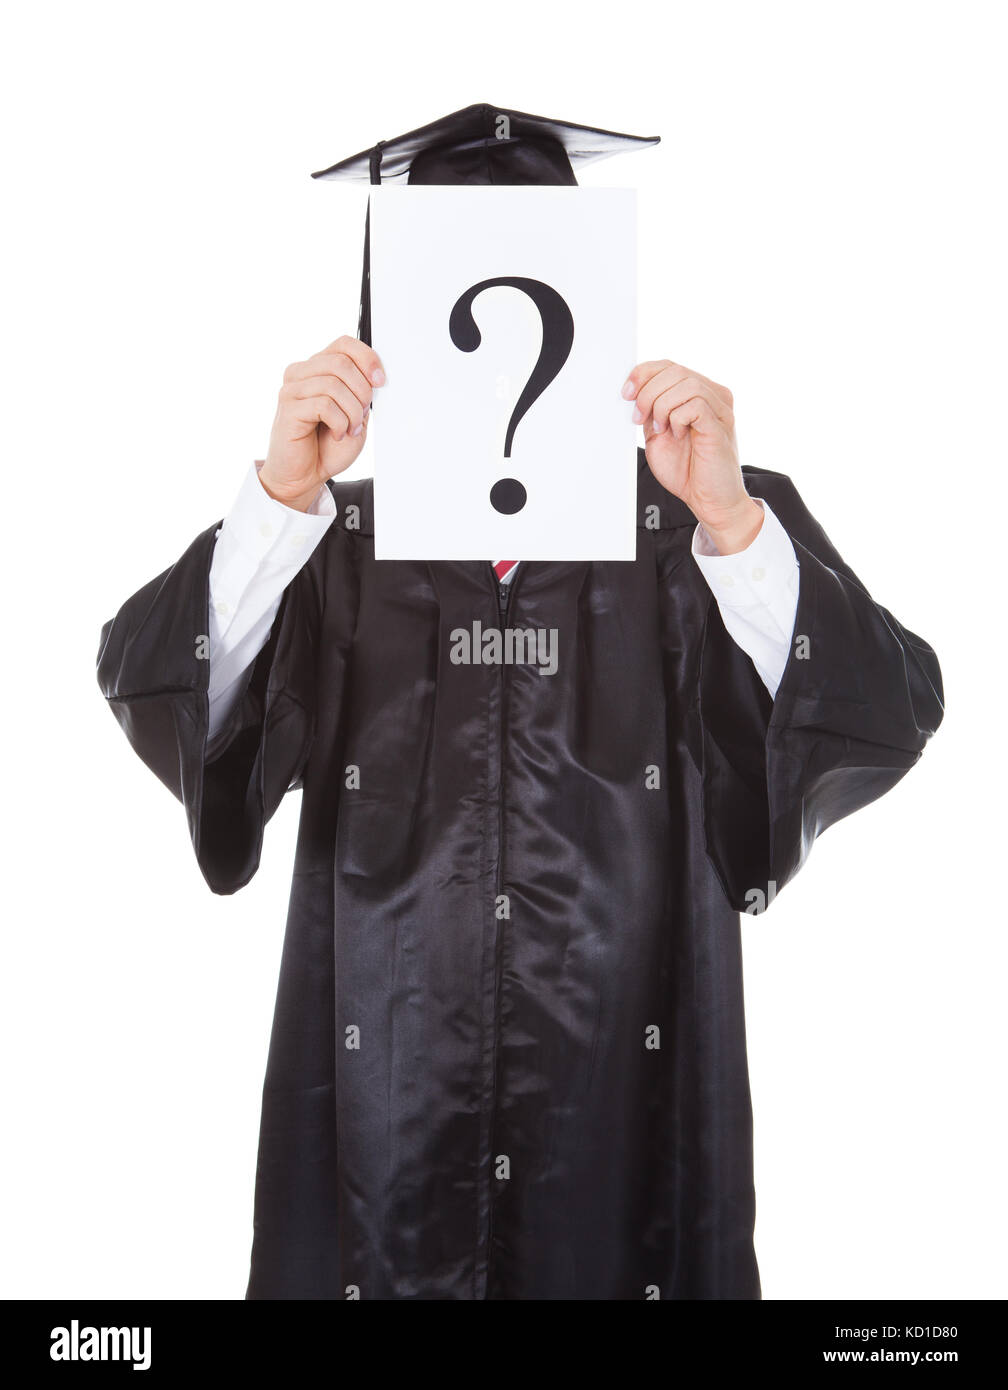 Graduate Person Holding Question Mark Sign In Front Of Face Over White Background - Stock Image